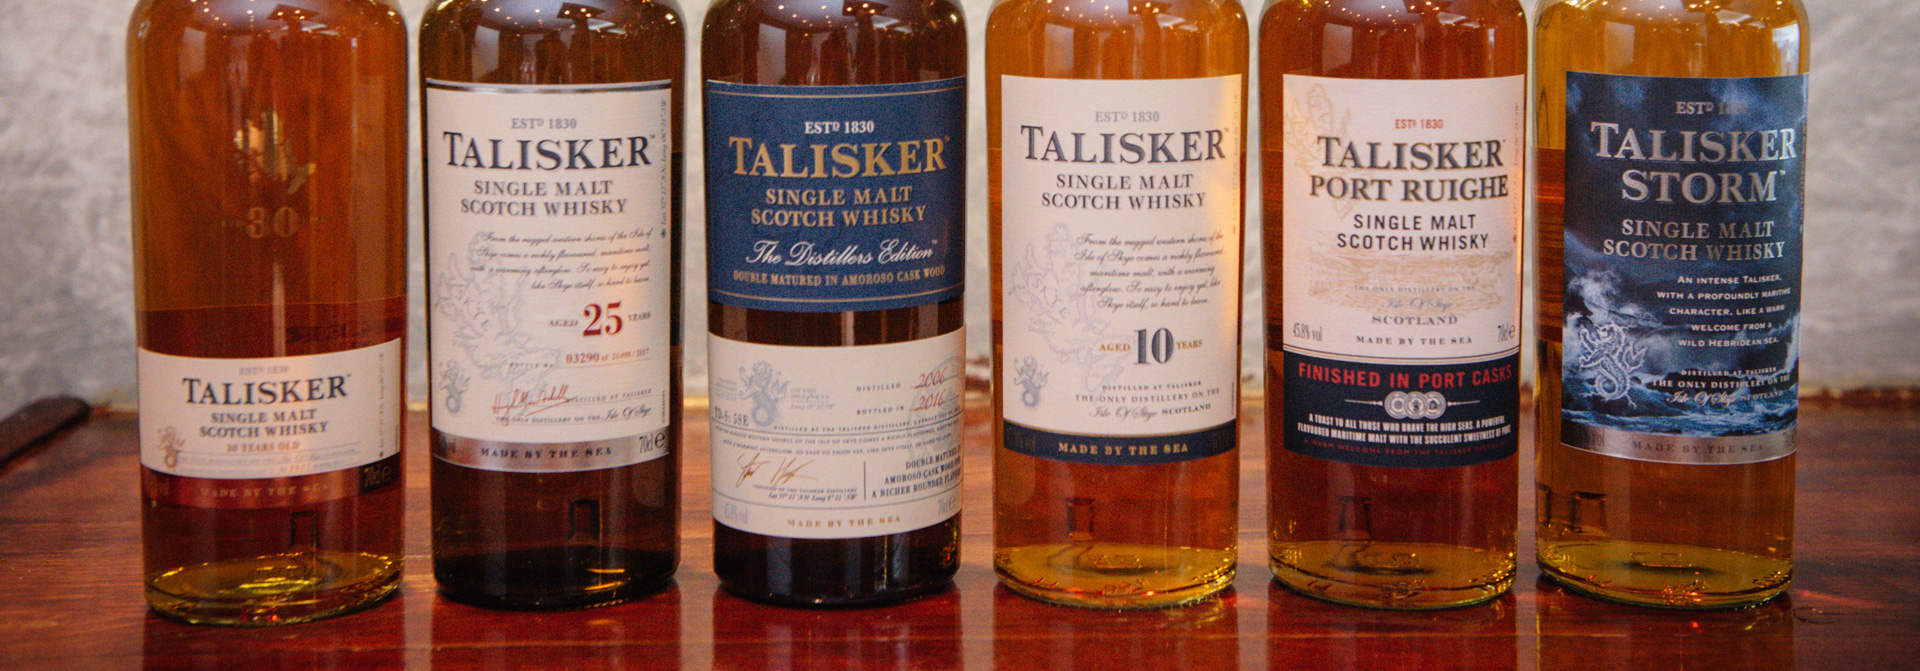 the tasters club whisky tasting day talisker 4wine ουισκι